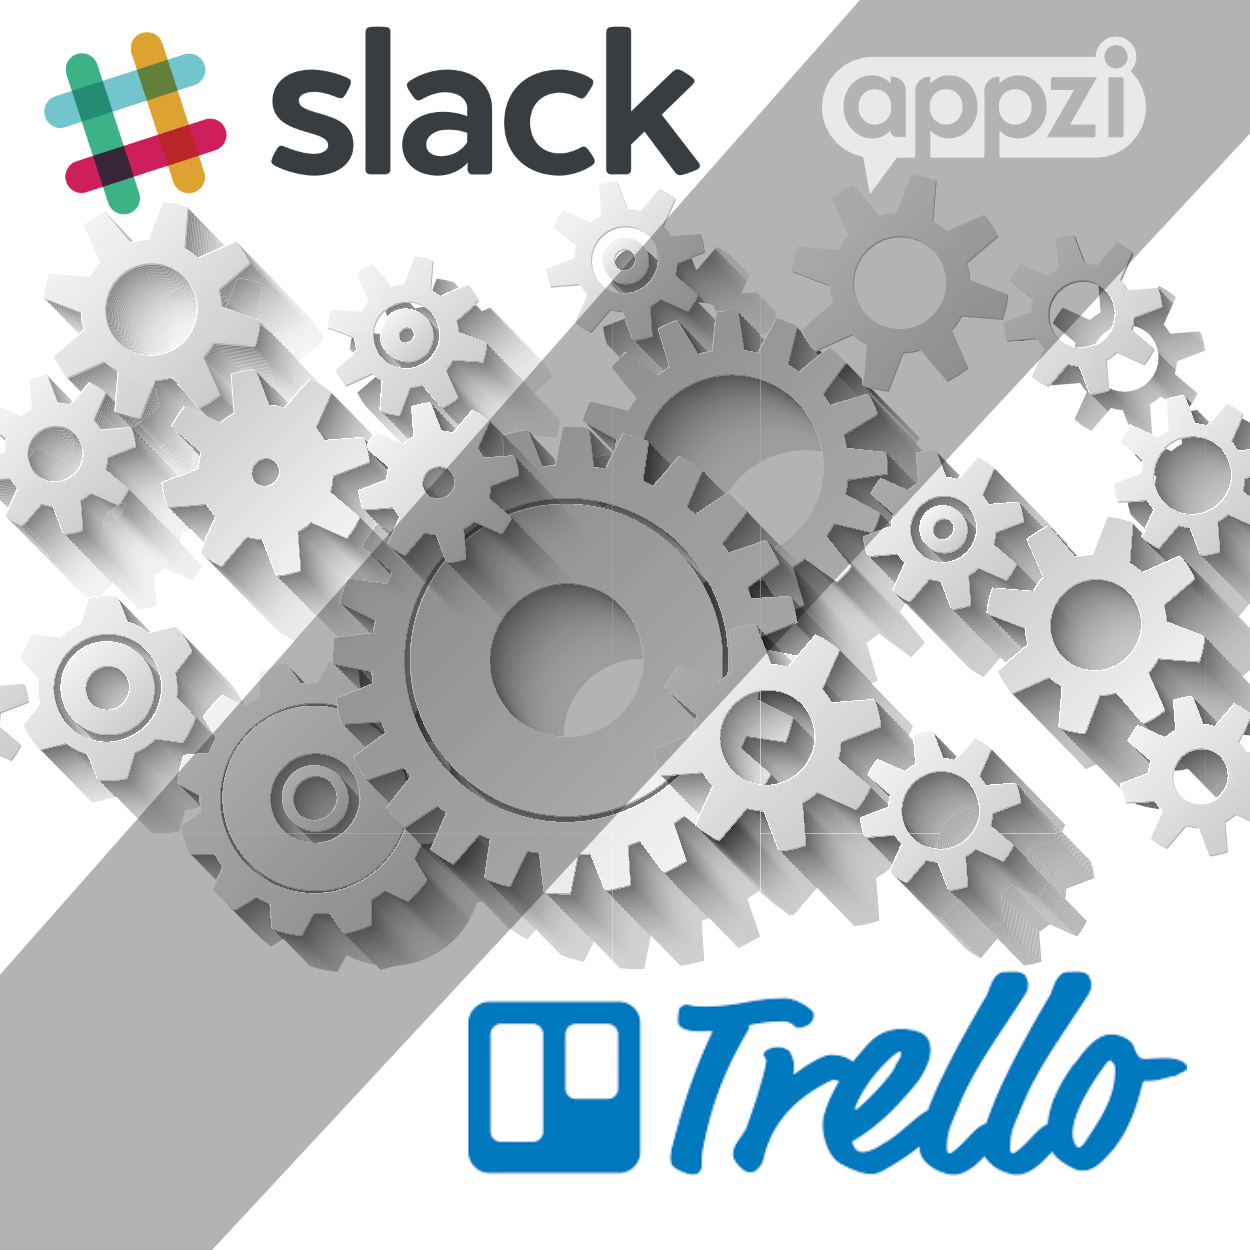 Slack And Trello Integration – What's New with Appzi